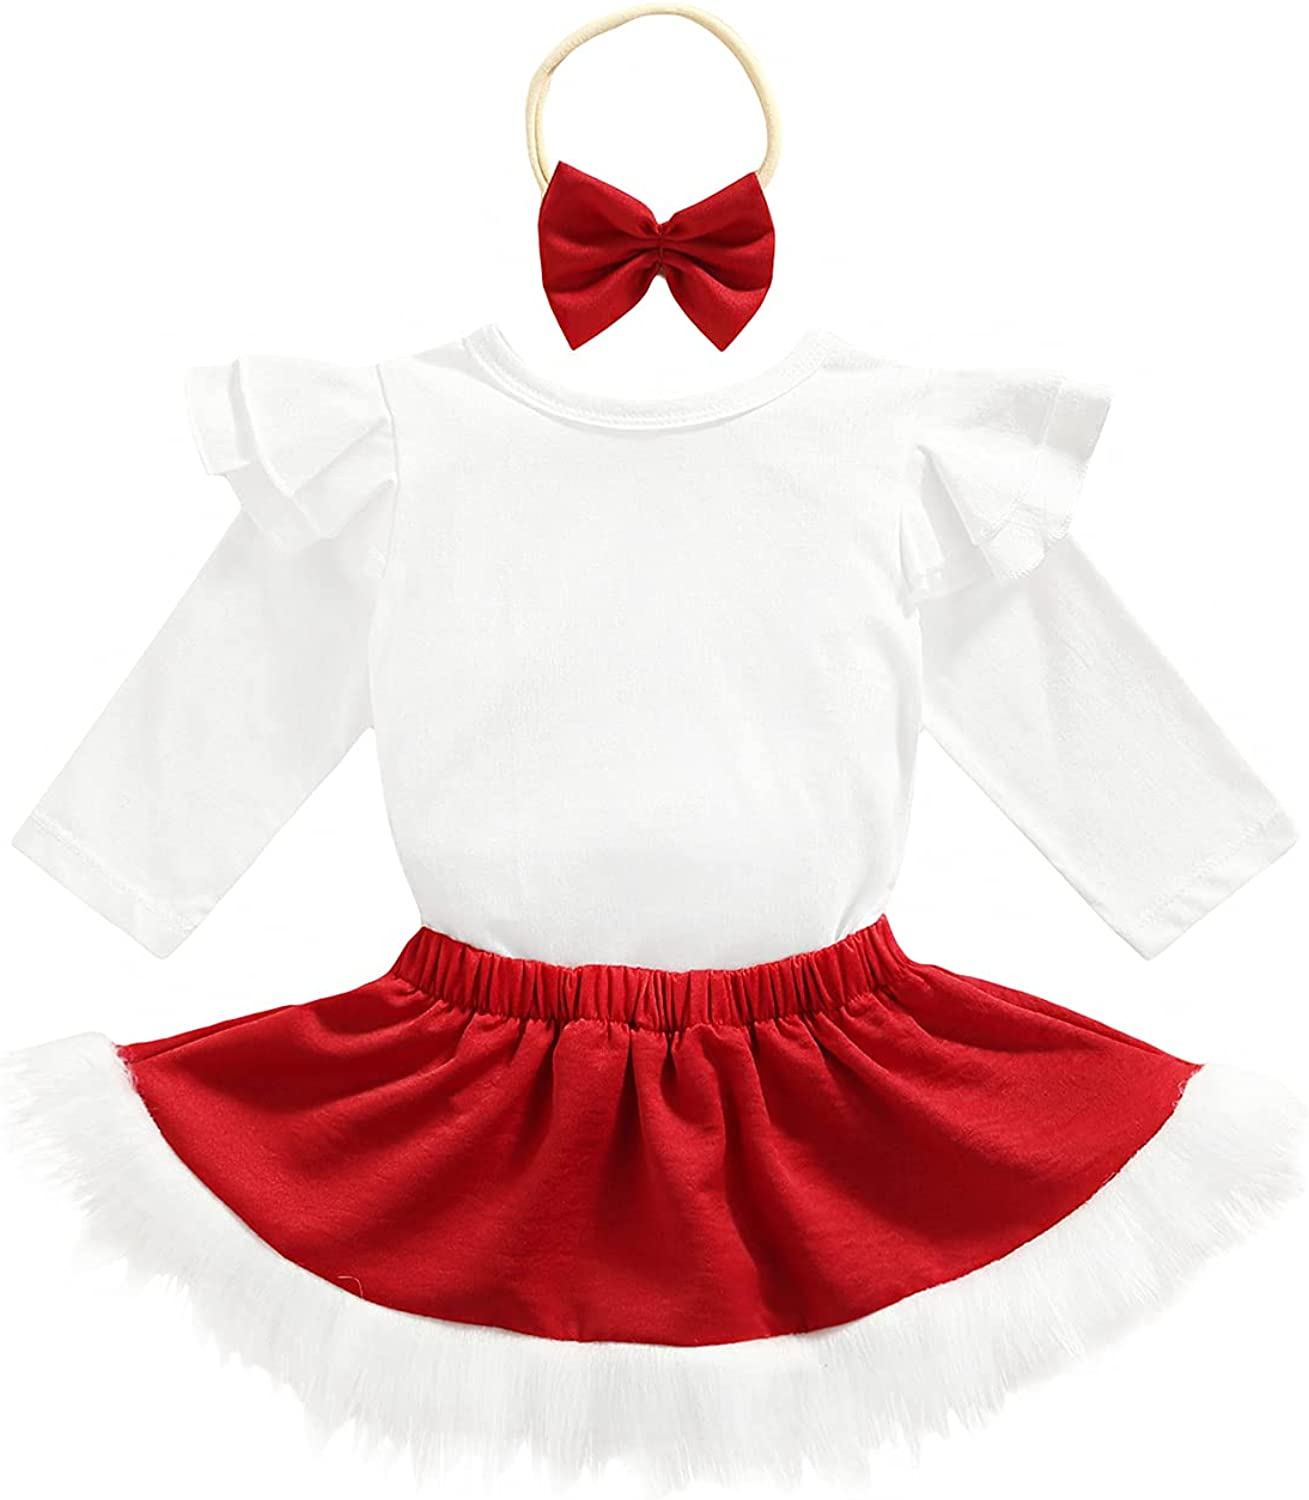 Infant Baby Girls Romper Skirt Christmas Outfit Set Flutter Sleeve Fluffy Cute Long Sleeve Xmas Clothes with Headband